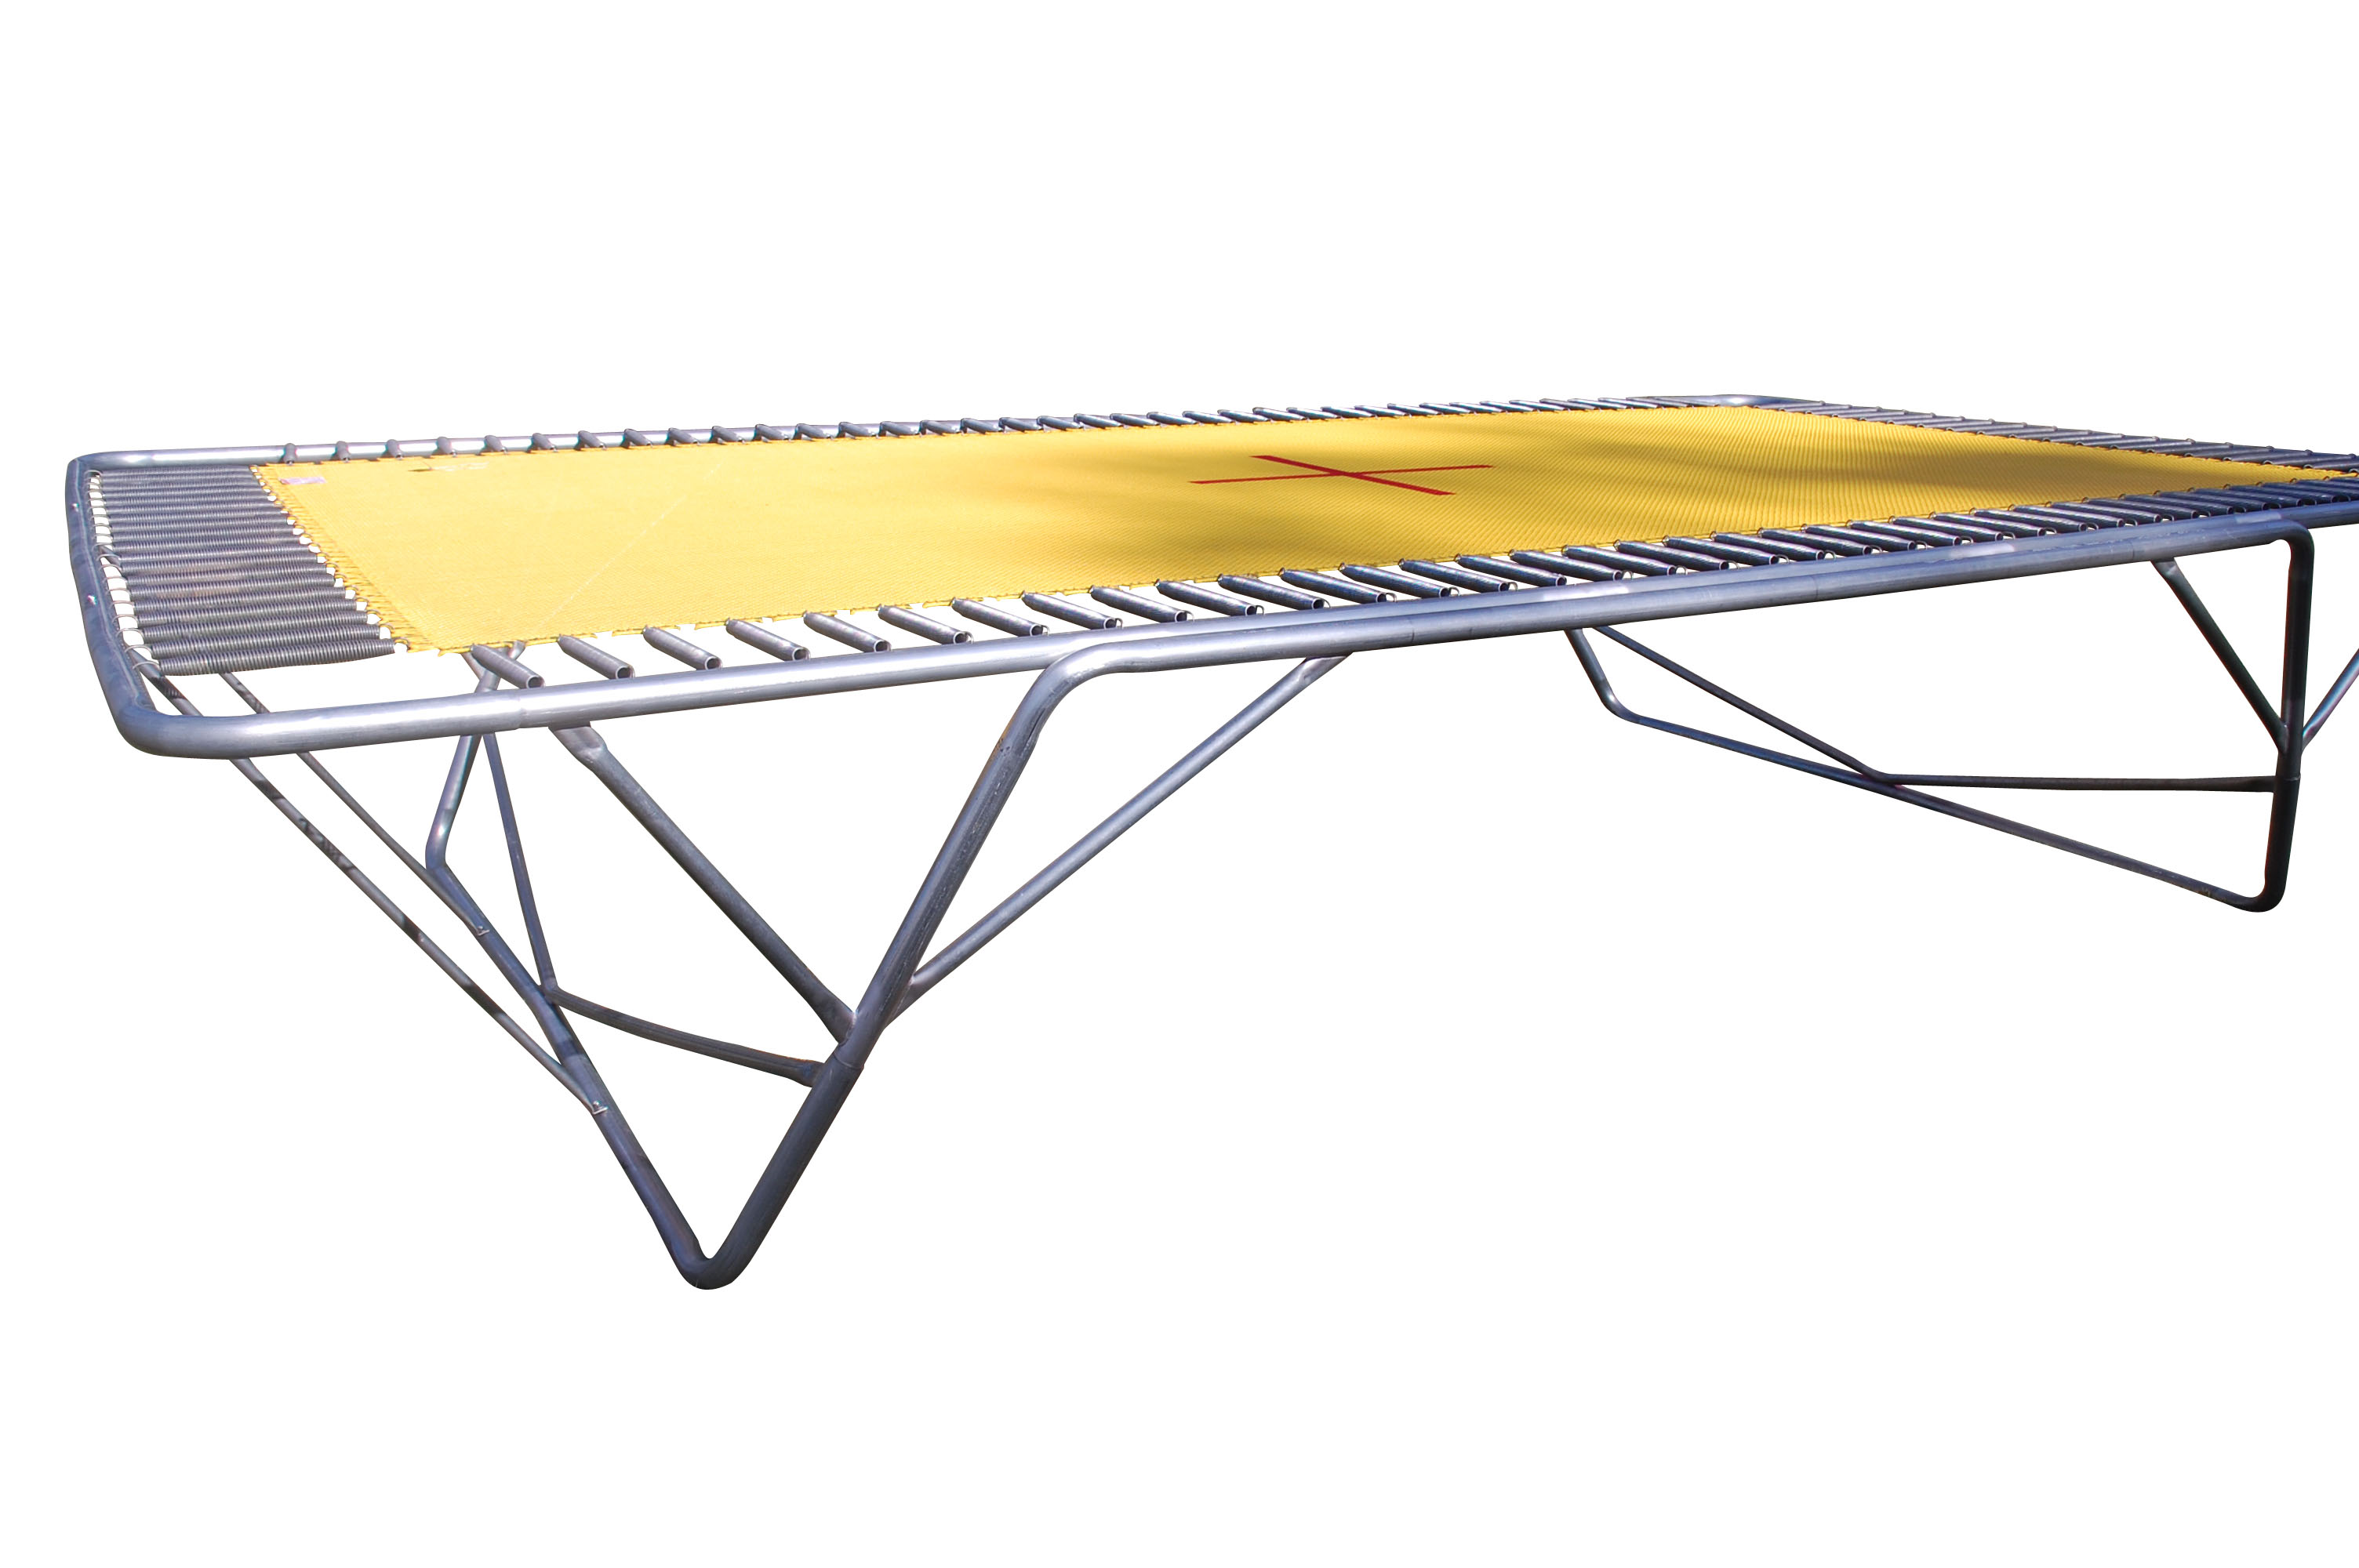 Pro Jumbo Aussie Trampoline Black Poly Or Yellow 2